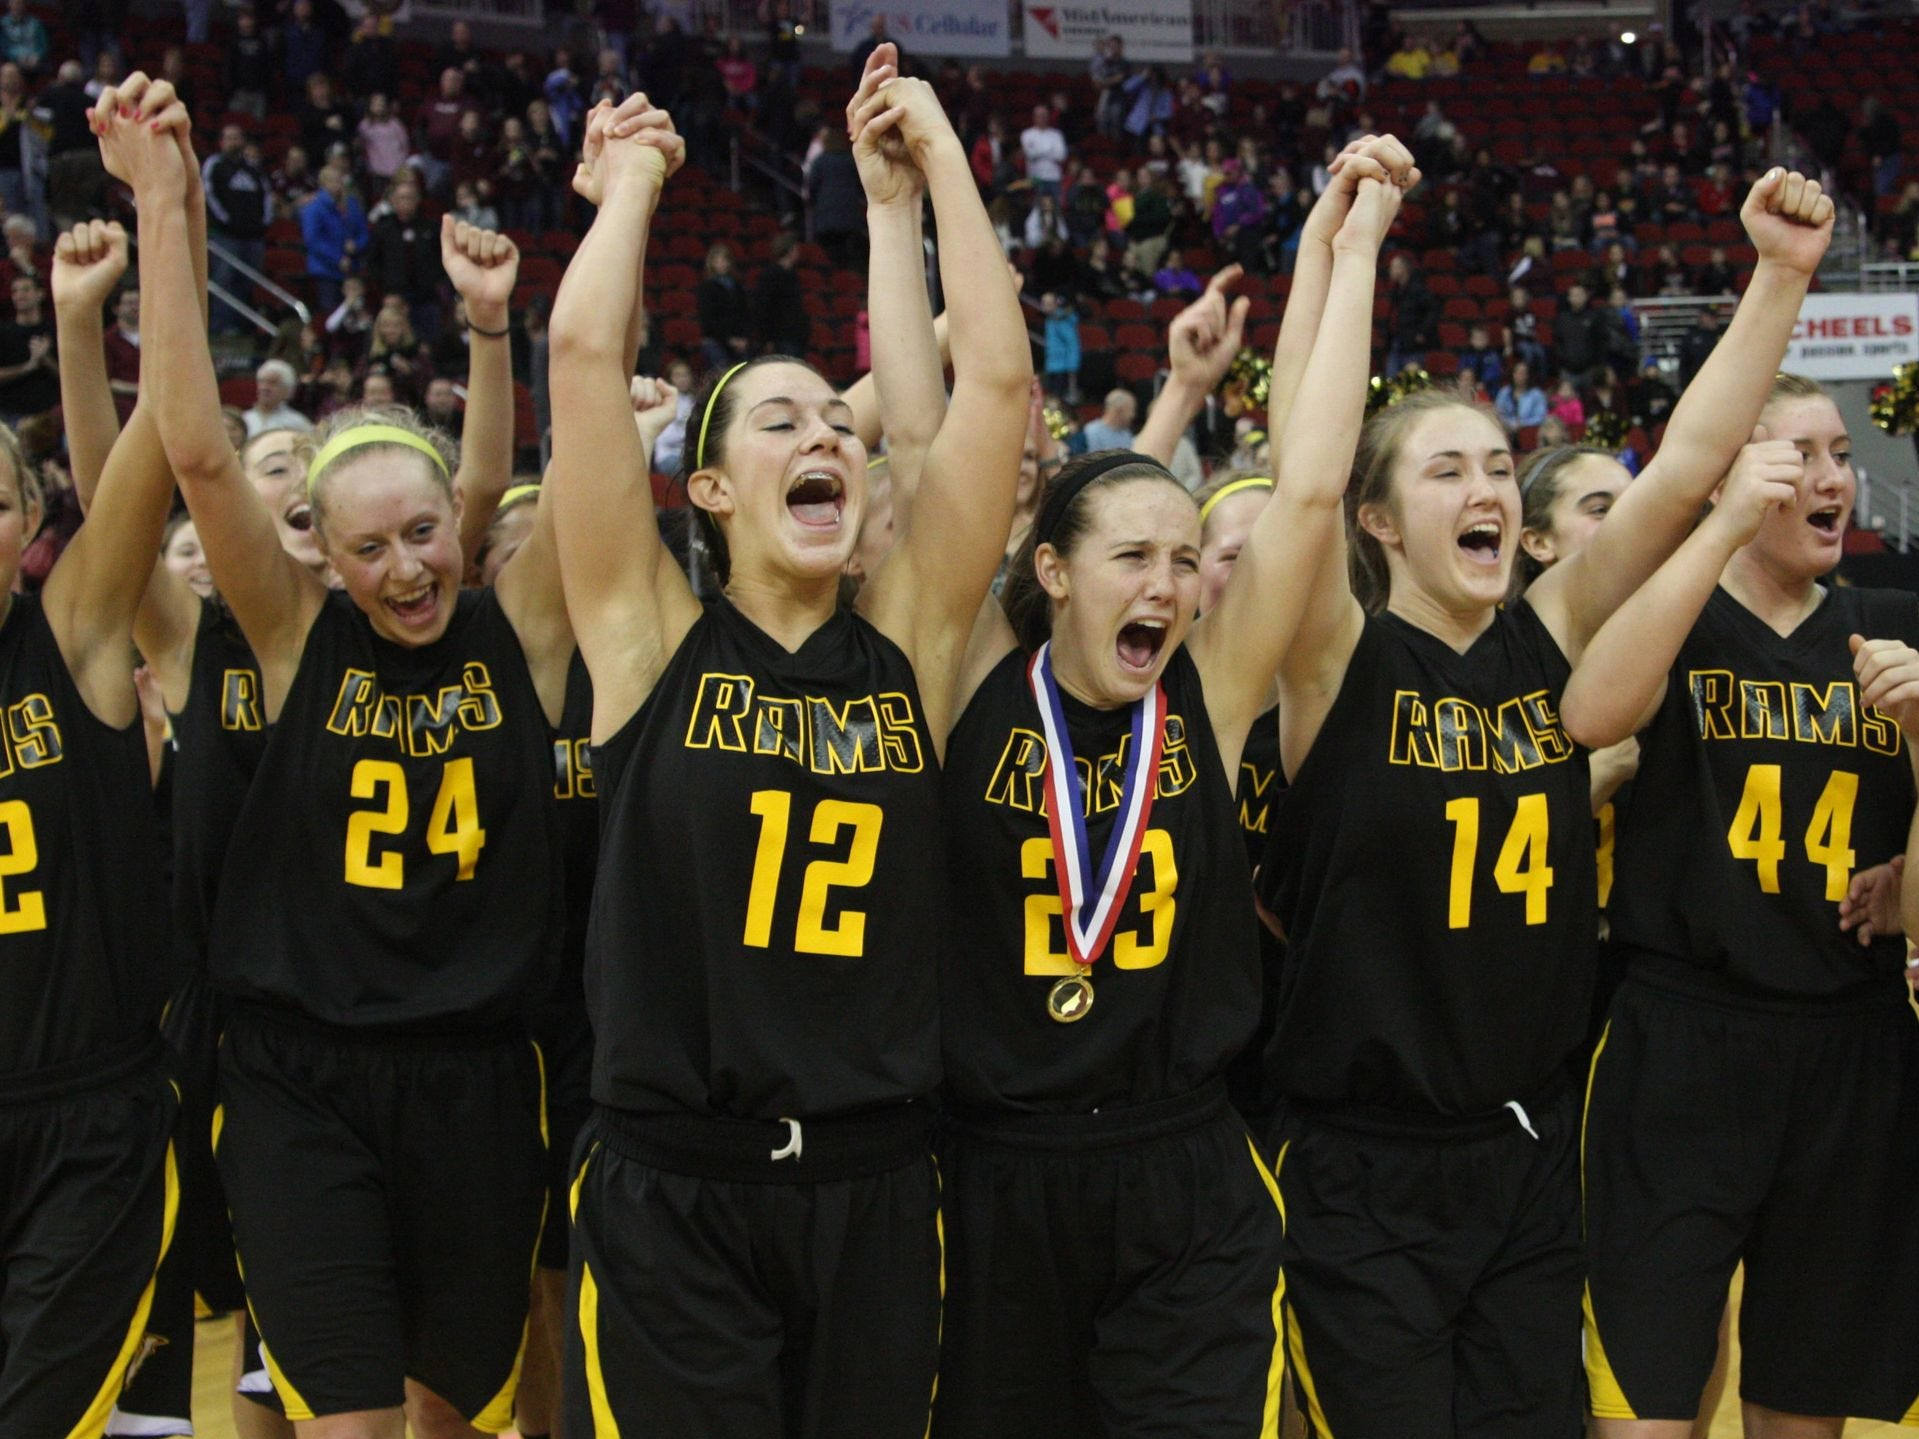 2013: Members of the Southeast Polk girls' basketball team including seniors, from left, Jessica Gardner (partially shown), Victoria Bricker (24), Megan Bianchi (12), Caitlin Ingle (23) and Dakota Taylor (14) cheer as they accept the Class 5-A championship trophy Saturday after beating Dowling Catholic, 43-34. Adam Wilson/Register file photo